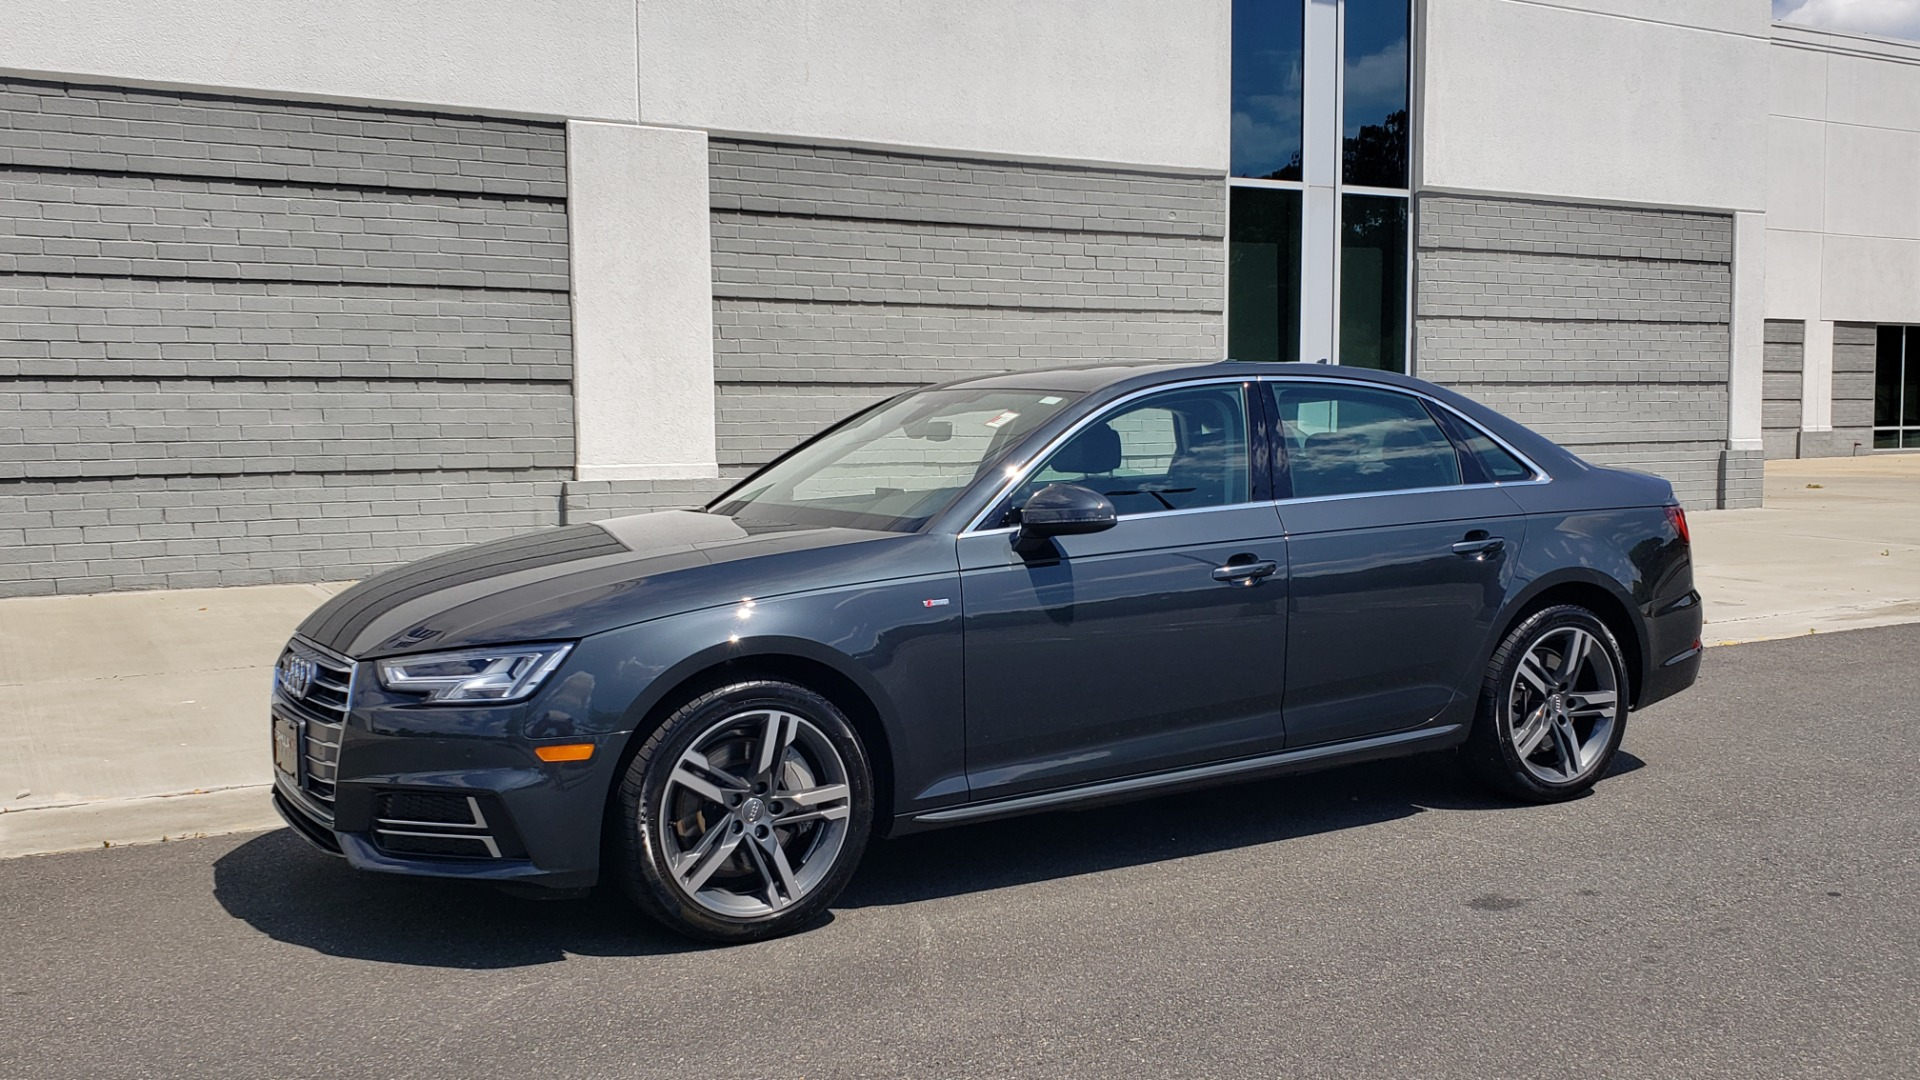 Used 2018 Audi A4 TECH PREMIUM PLUS / NAV / B&O SND / SUNROOF / CLD WTHR / REARVIEW for sale $28,595 at Formula Imports in Charlotte NC 28227 4